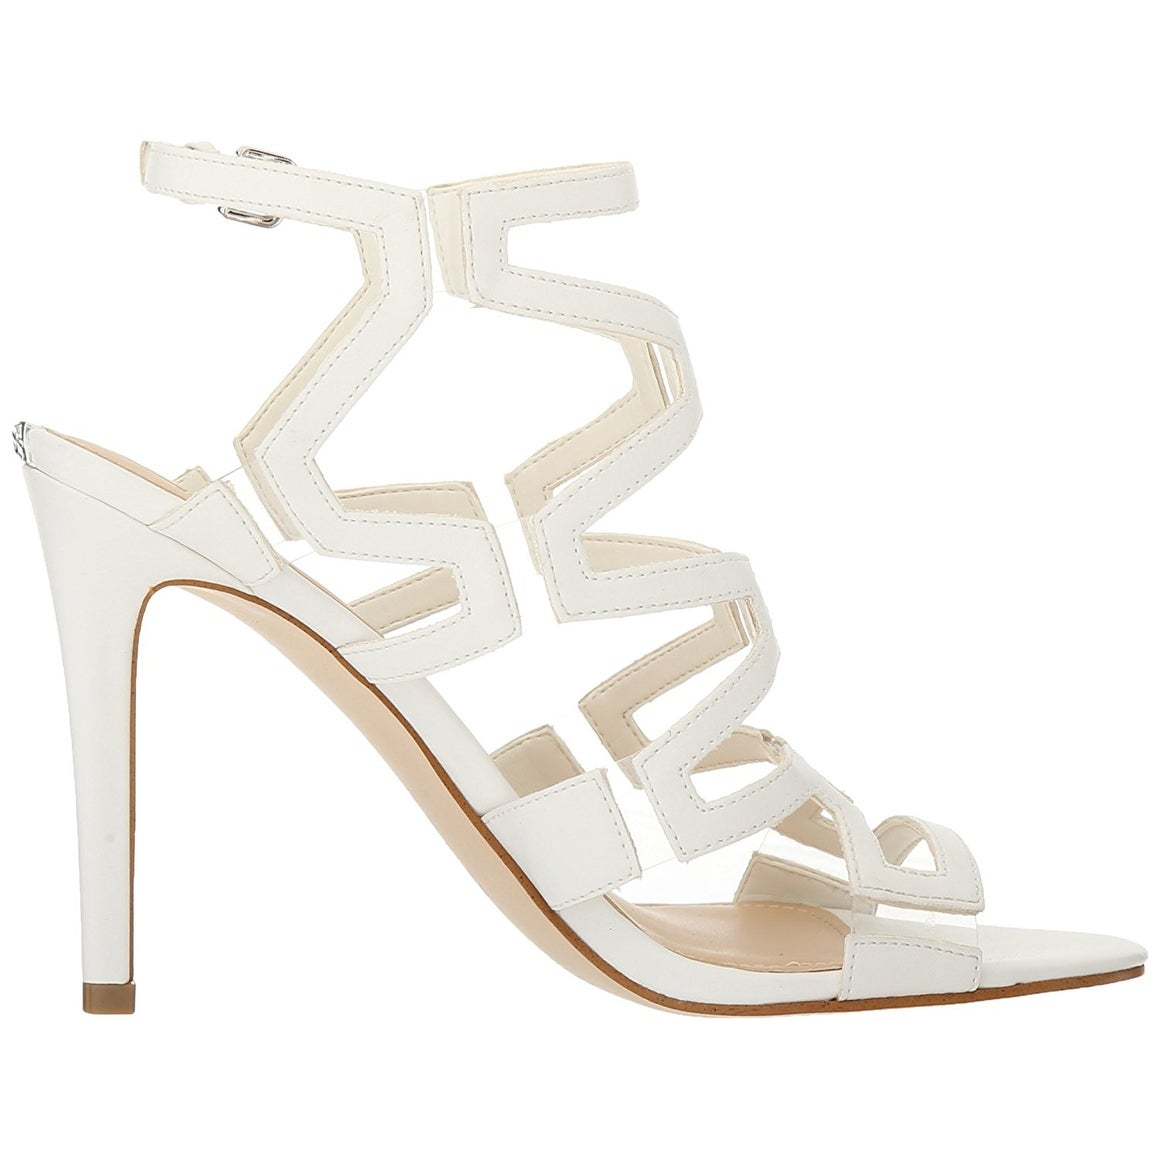 3e7594448435c GUESS Womens Padton3 Leather Almond Toe Special Occasion Strappy Sandals